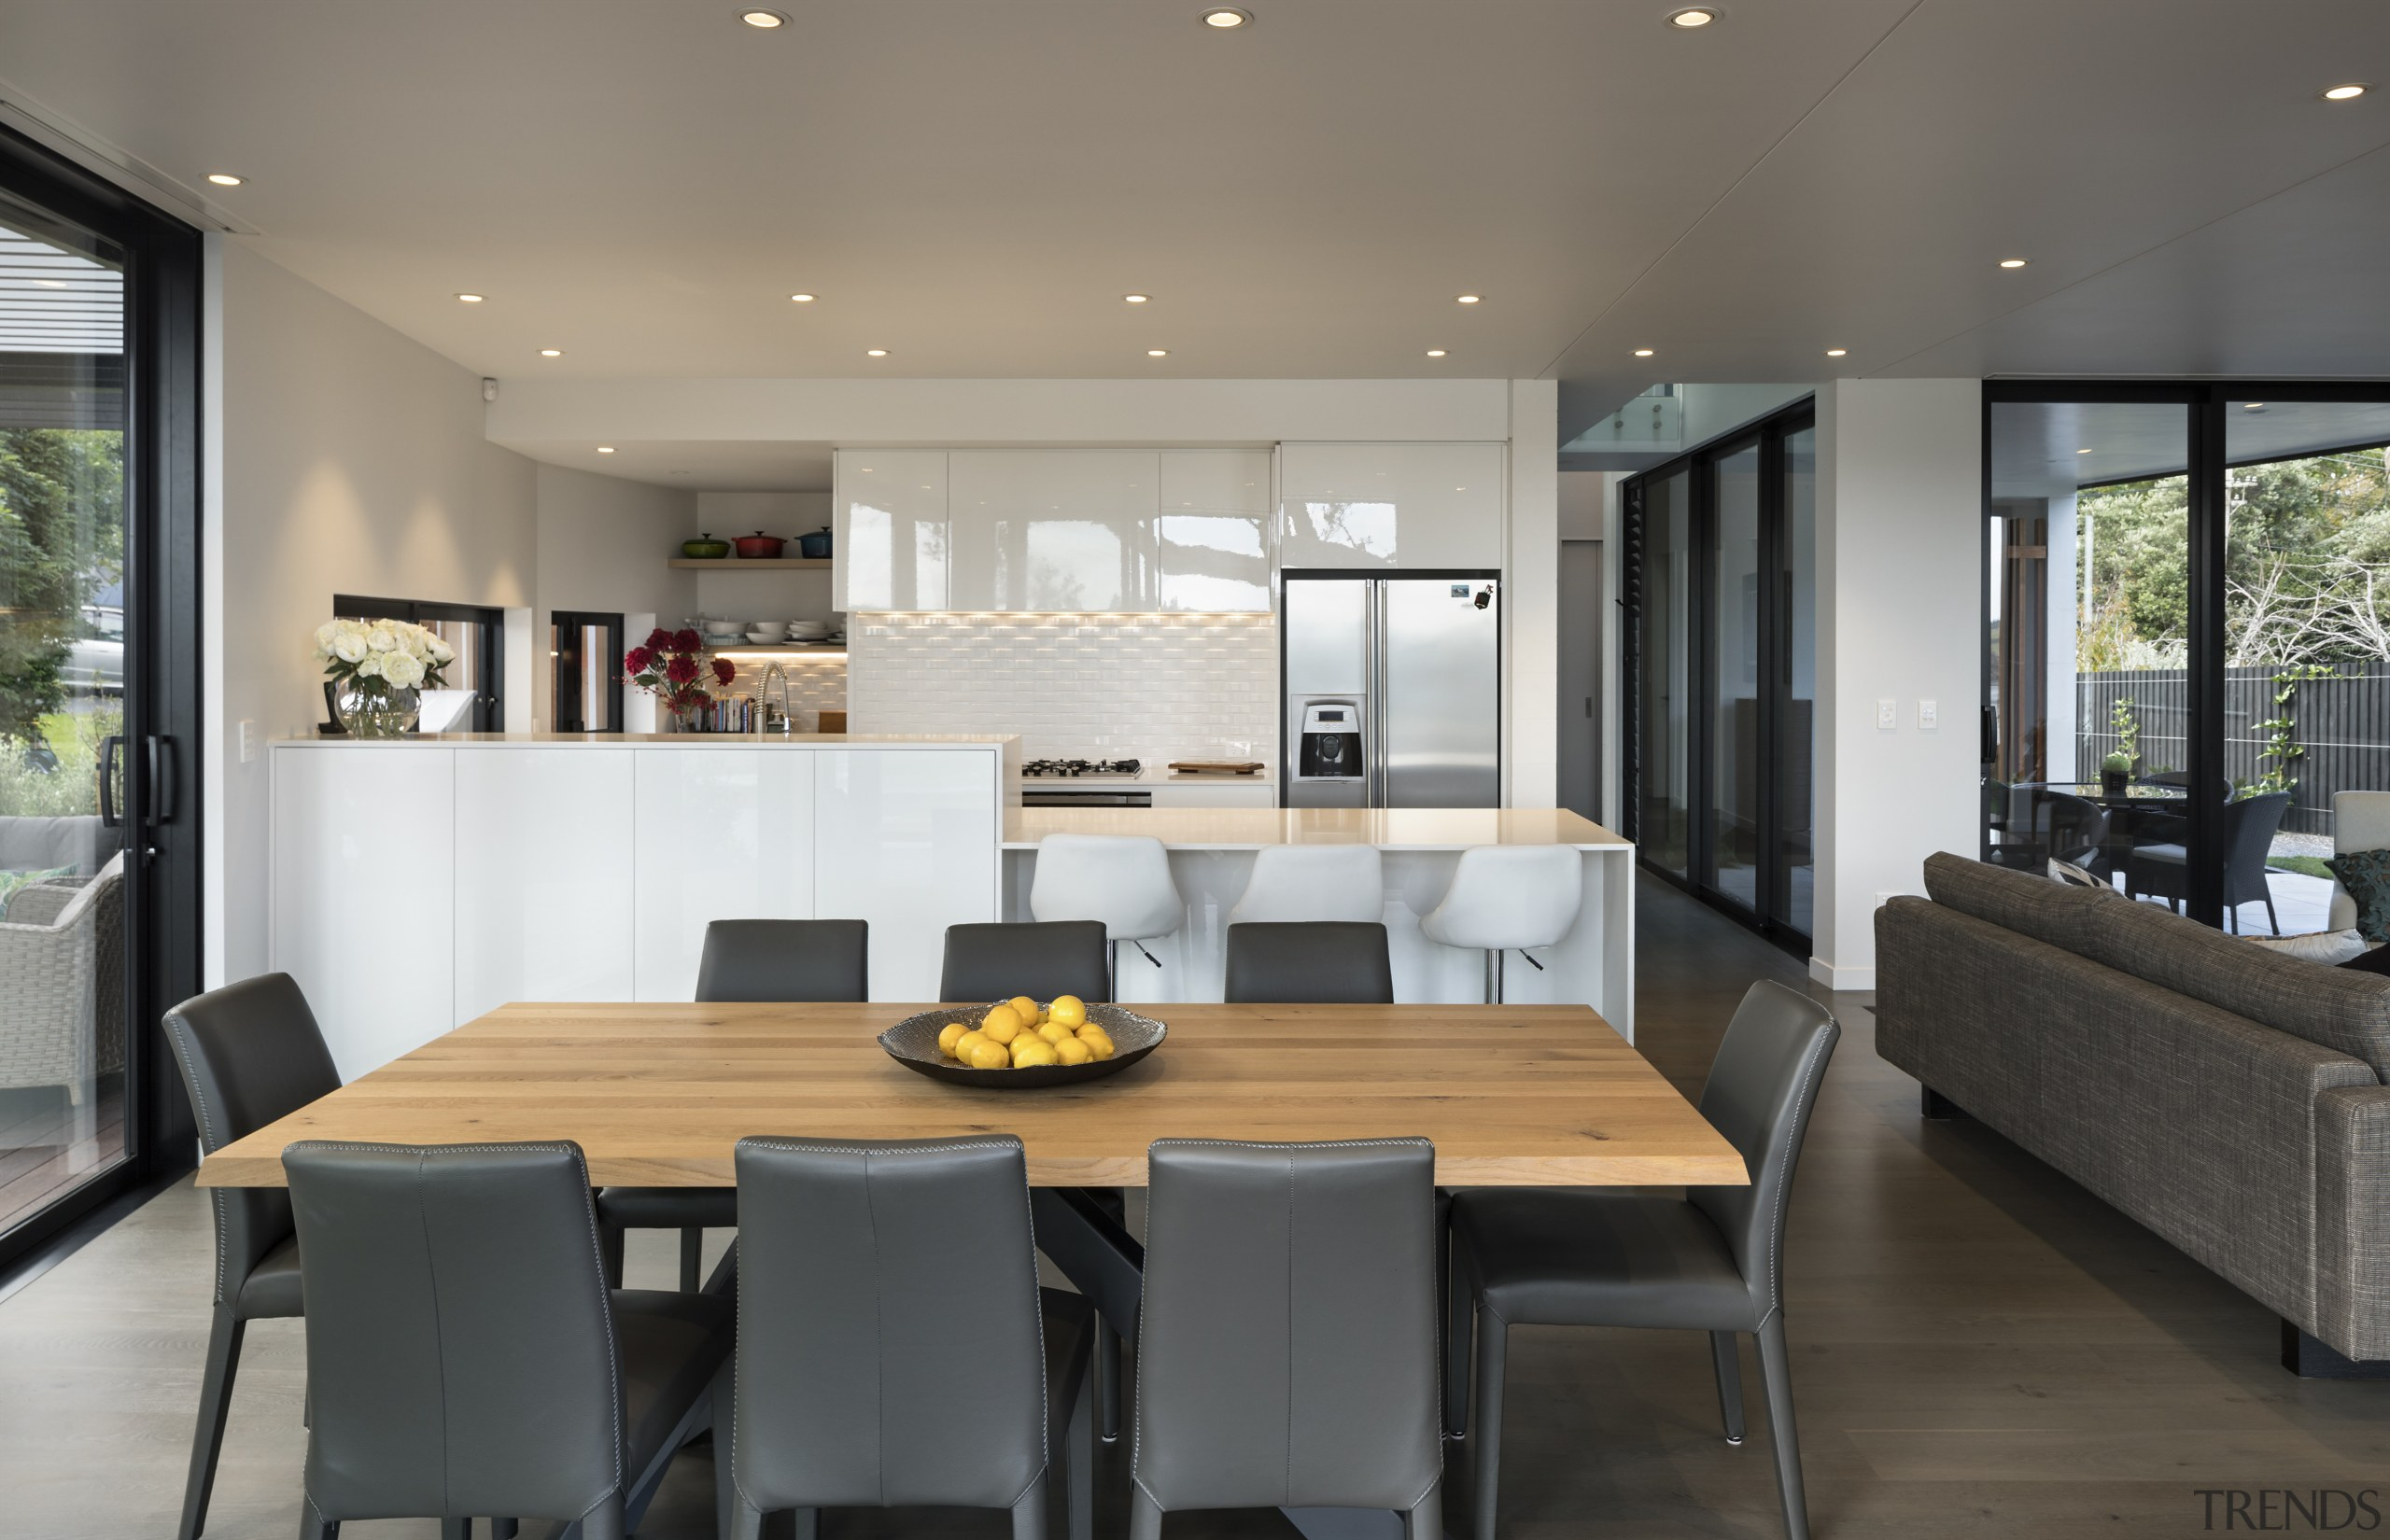 Kitchen and dining link to outdoor areas. - dining room, house, interior design, kitchen, living room, real estate, table, gray, black